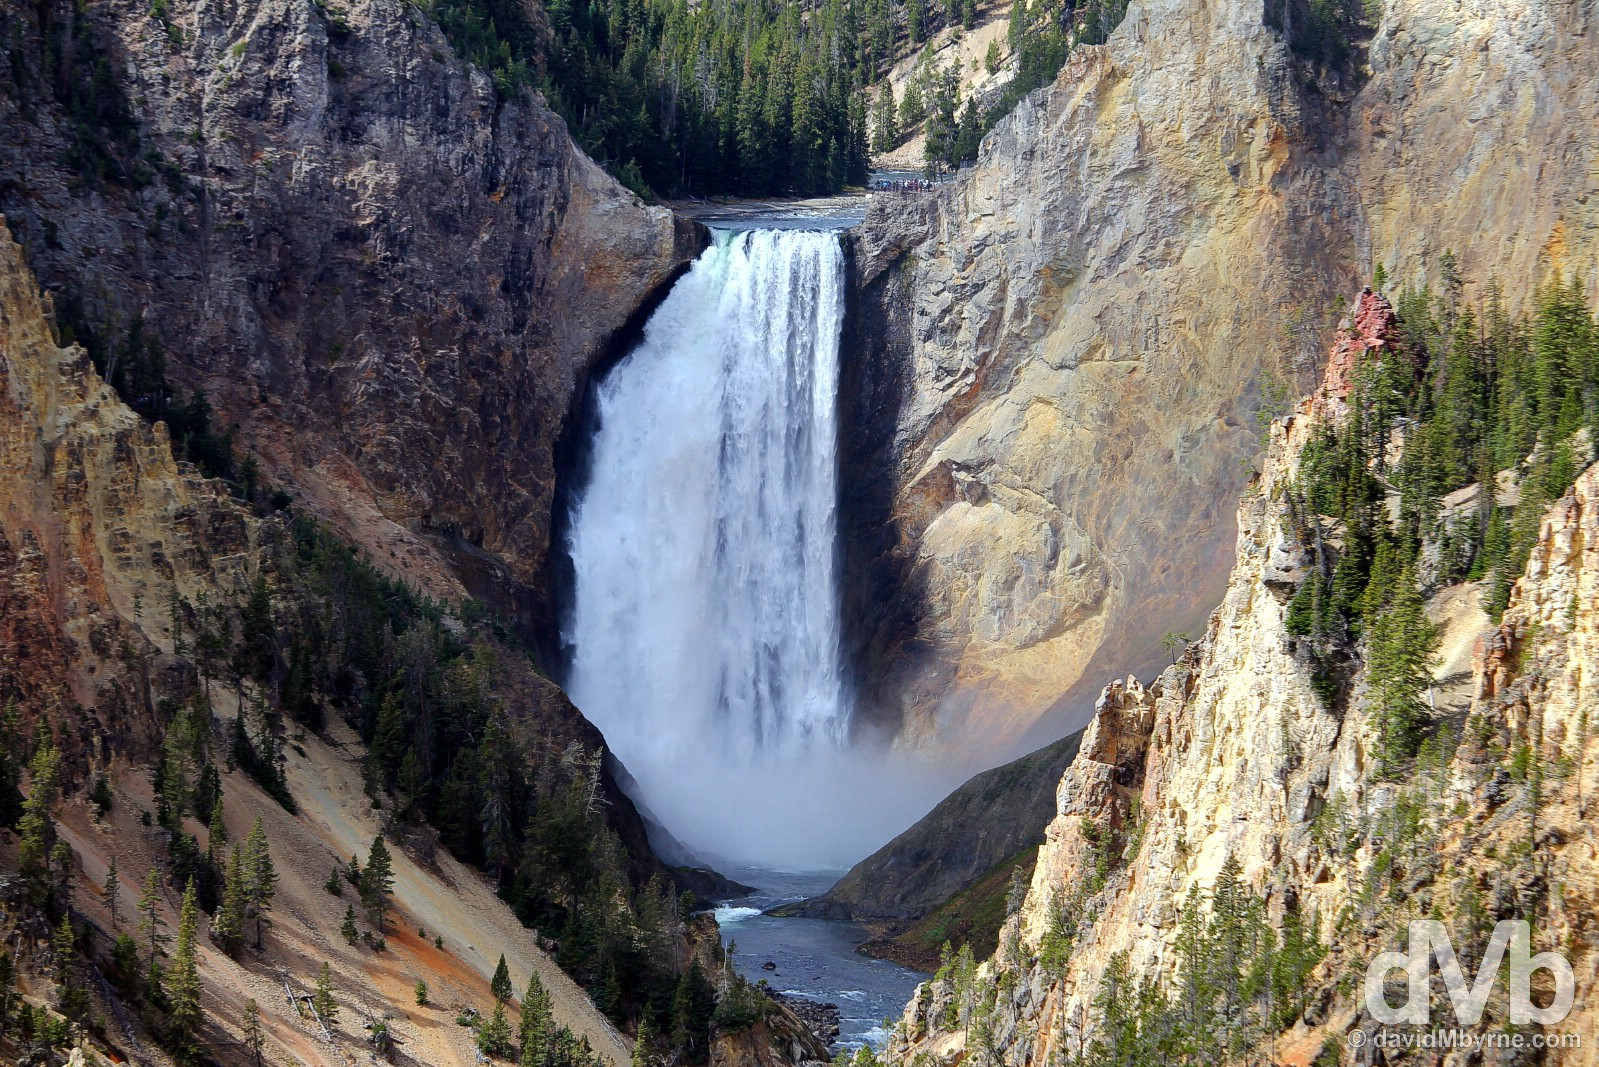 Lower Falls of the Grand Canyon of the Yellowstone River, Yellowstone National Park, Wyoming, USA. September 5, 2016.